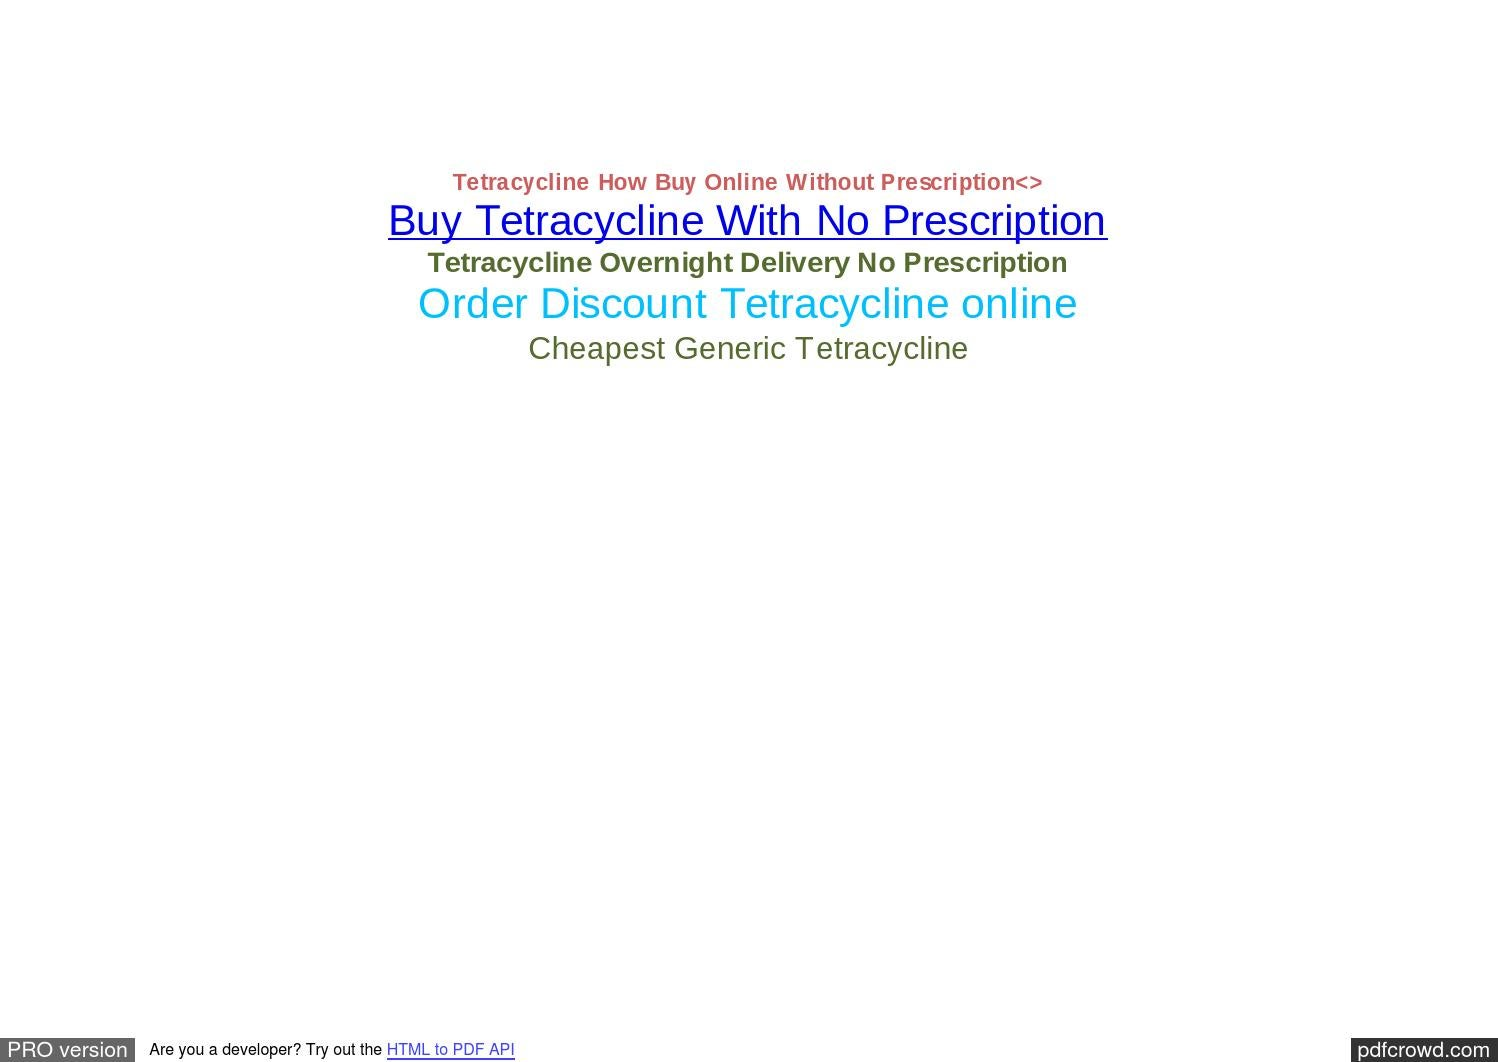 imitrex injection cost